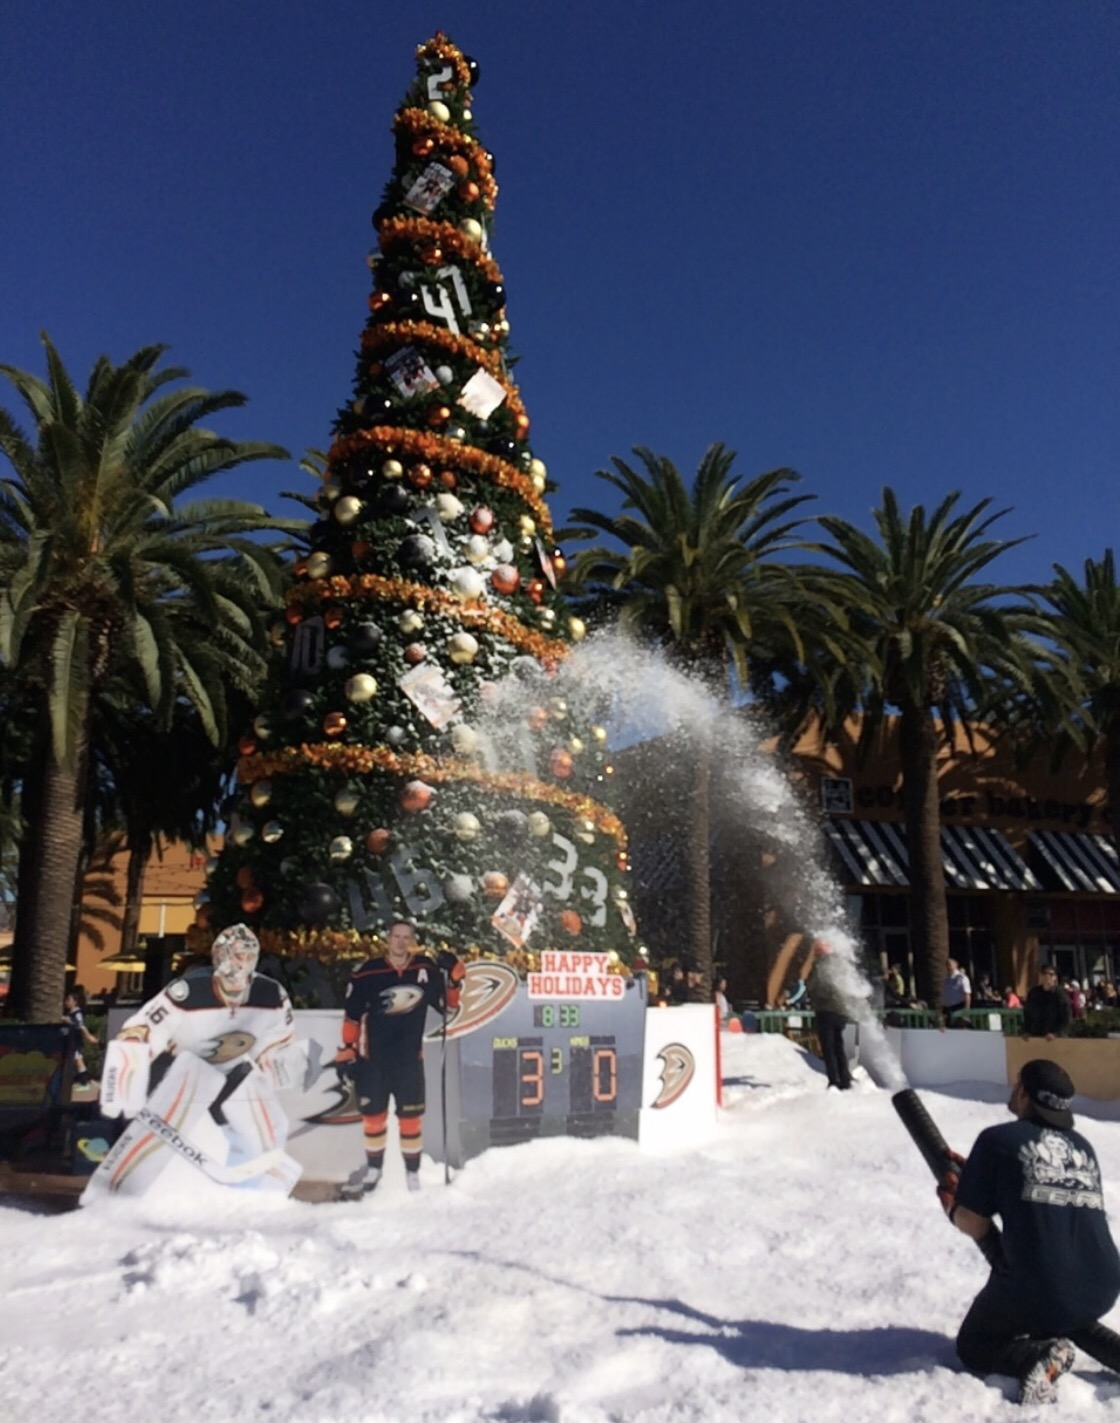 The Forecast On Sa Ay Dec 10s For 100 Percent Chance Of Snow At Irvine Spectrum Center Beginning At 6 A M 20 Tons Of Ice Blocks Will Be Shaved